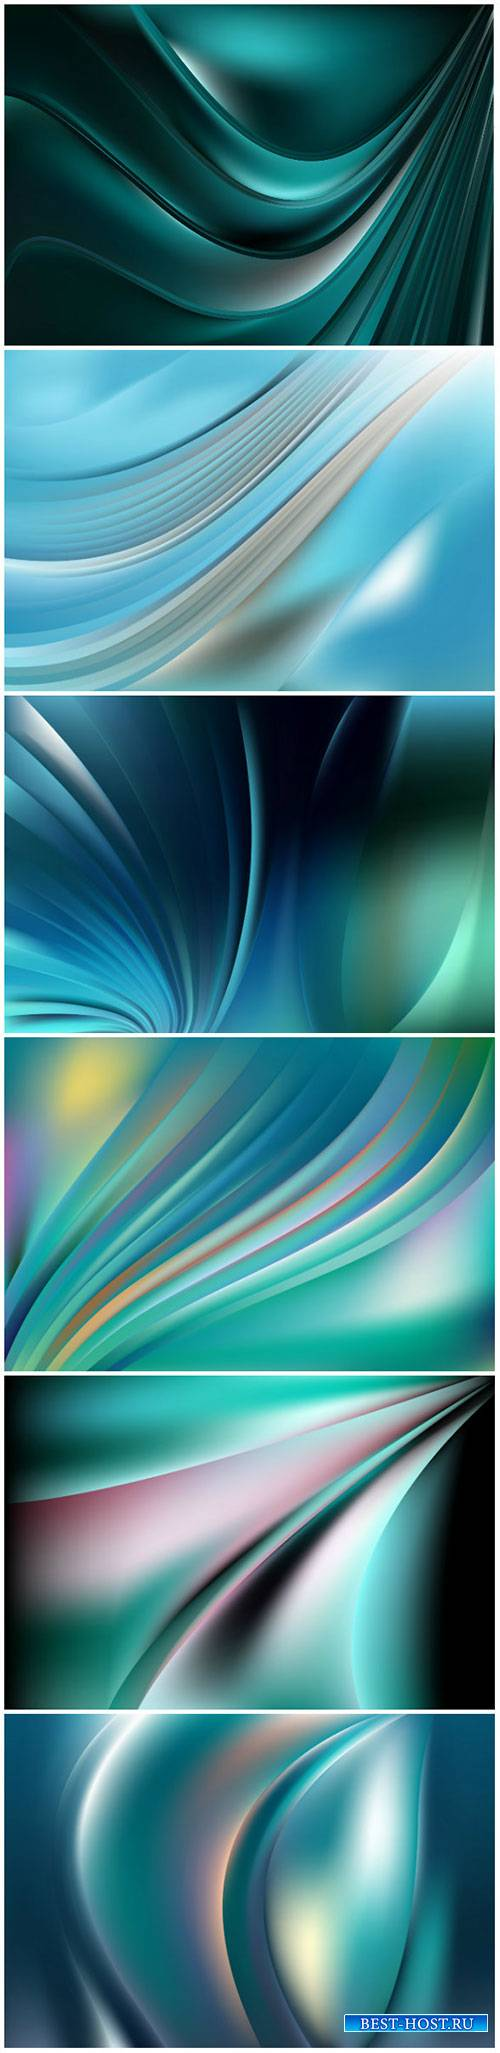 Creative abstract background vector design